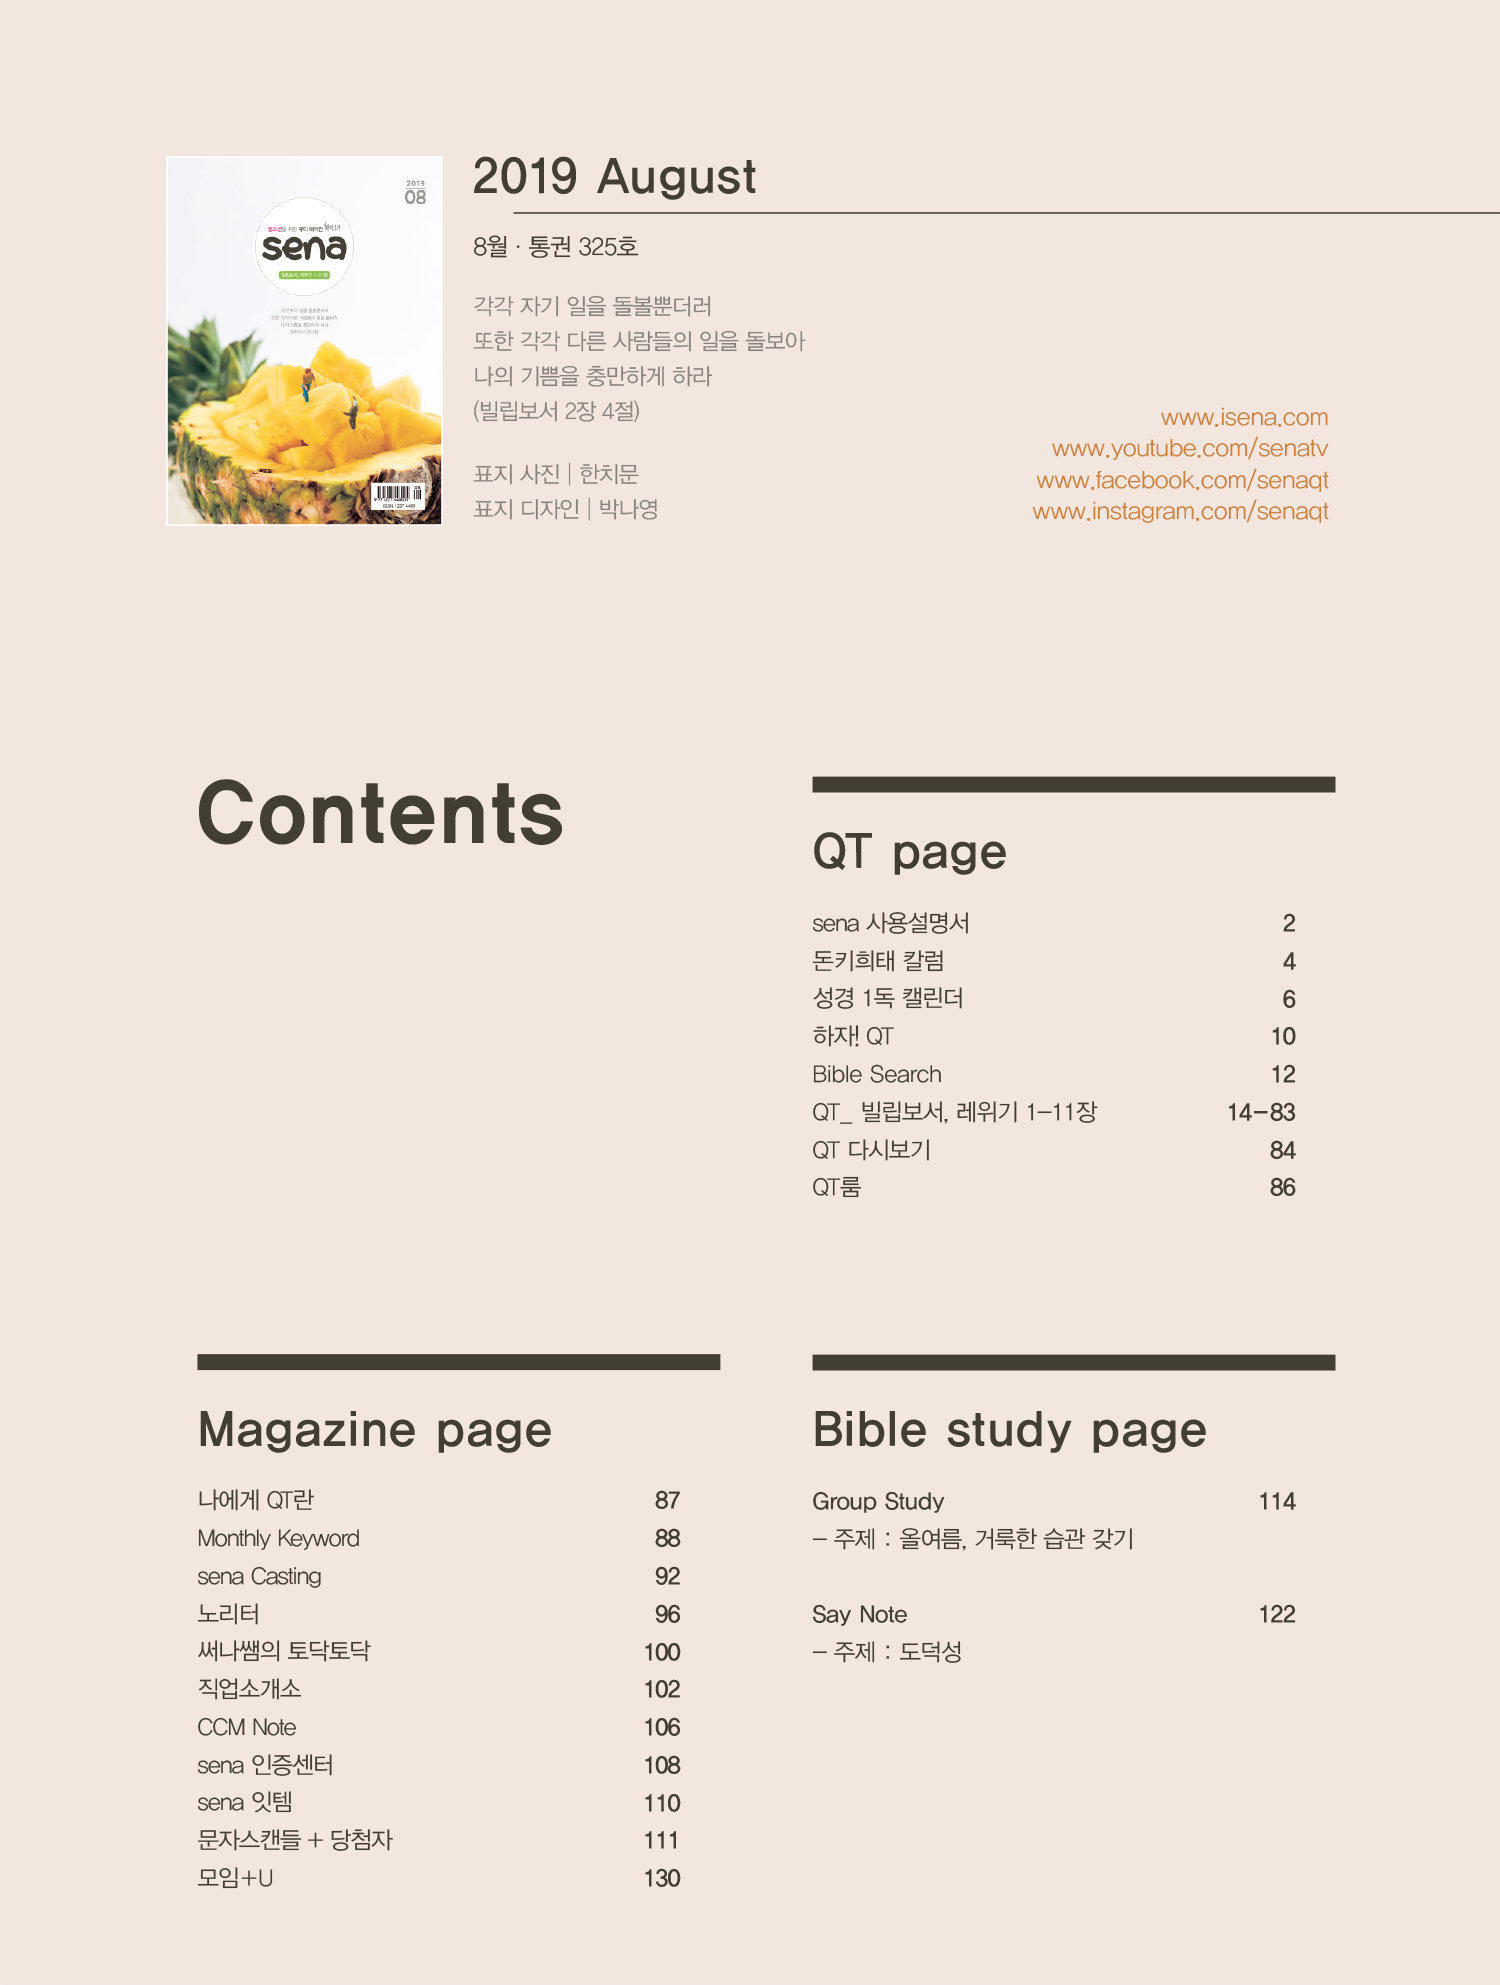 201908 contents